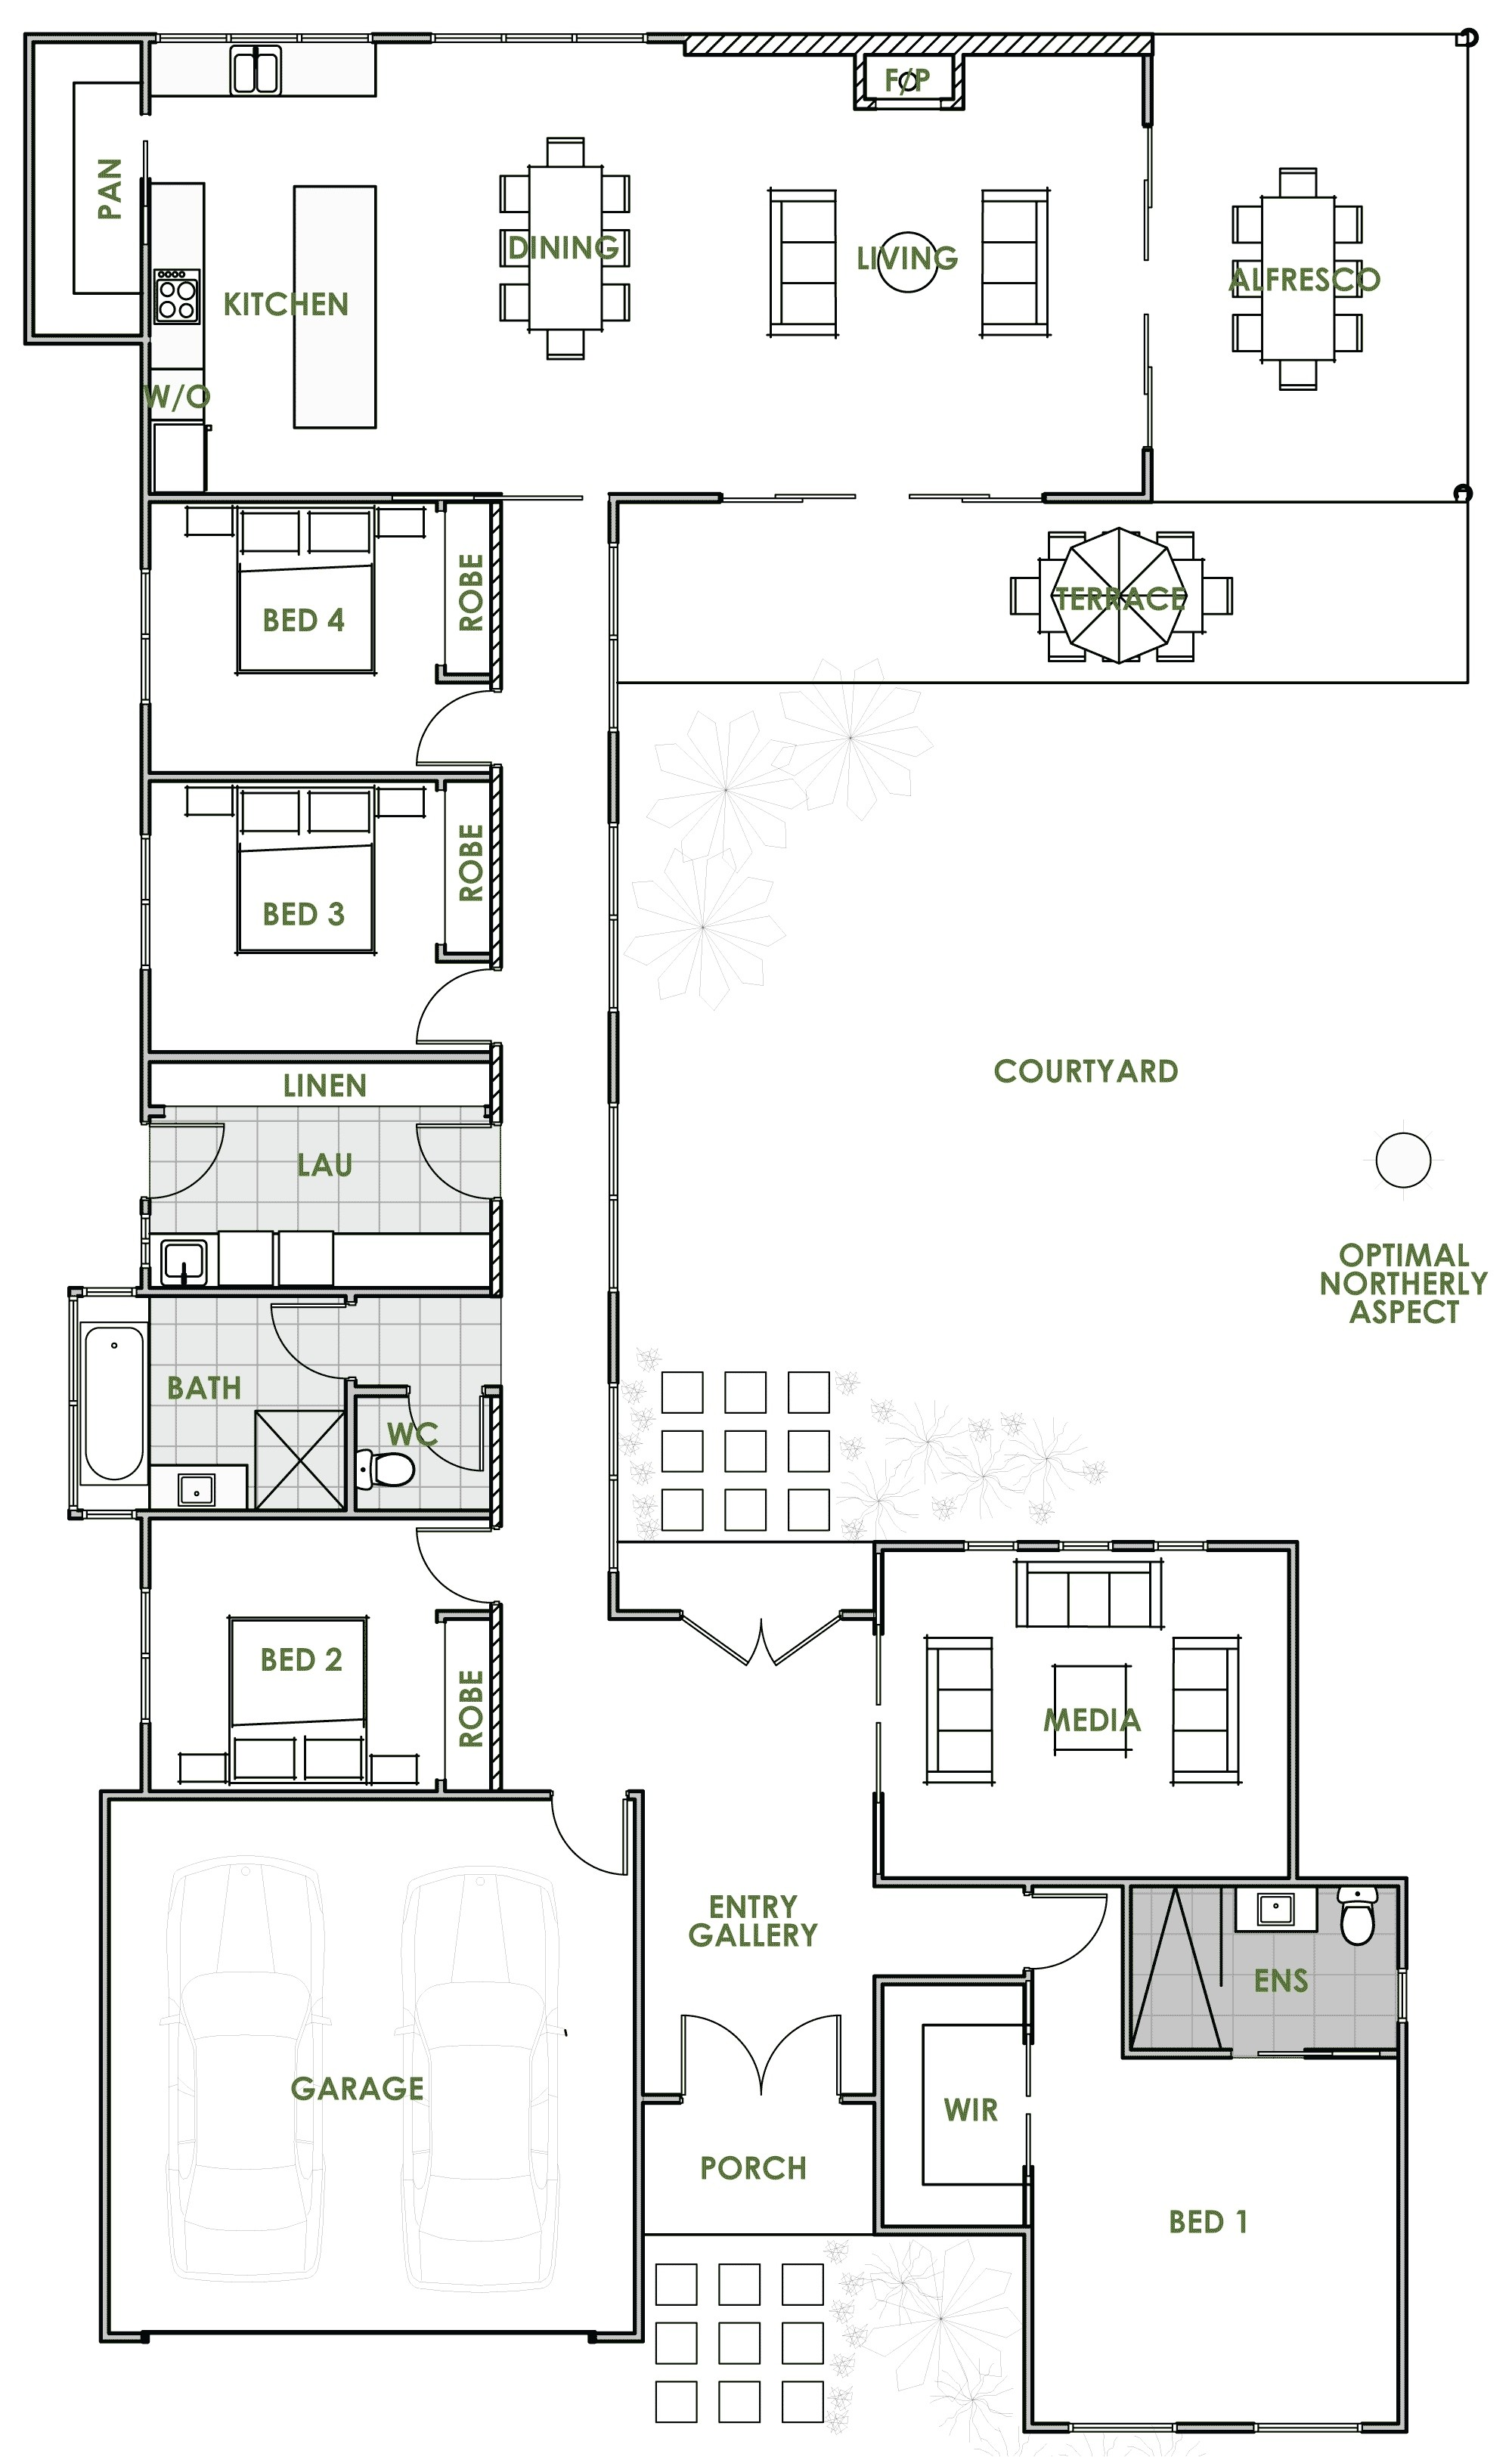 scott park homes floor plans